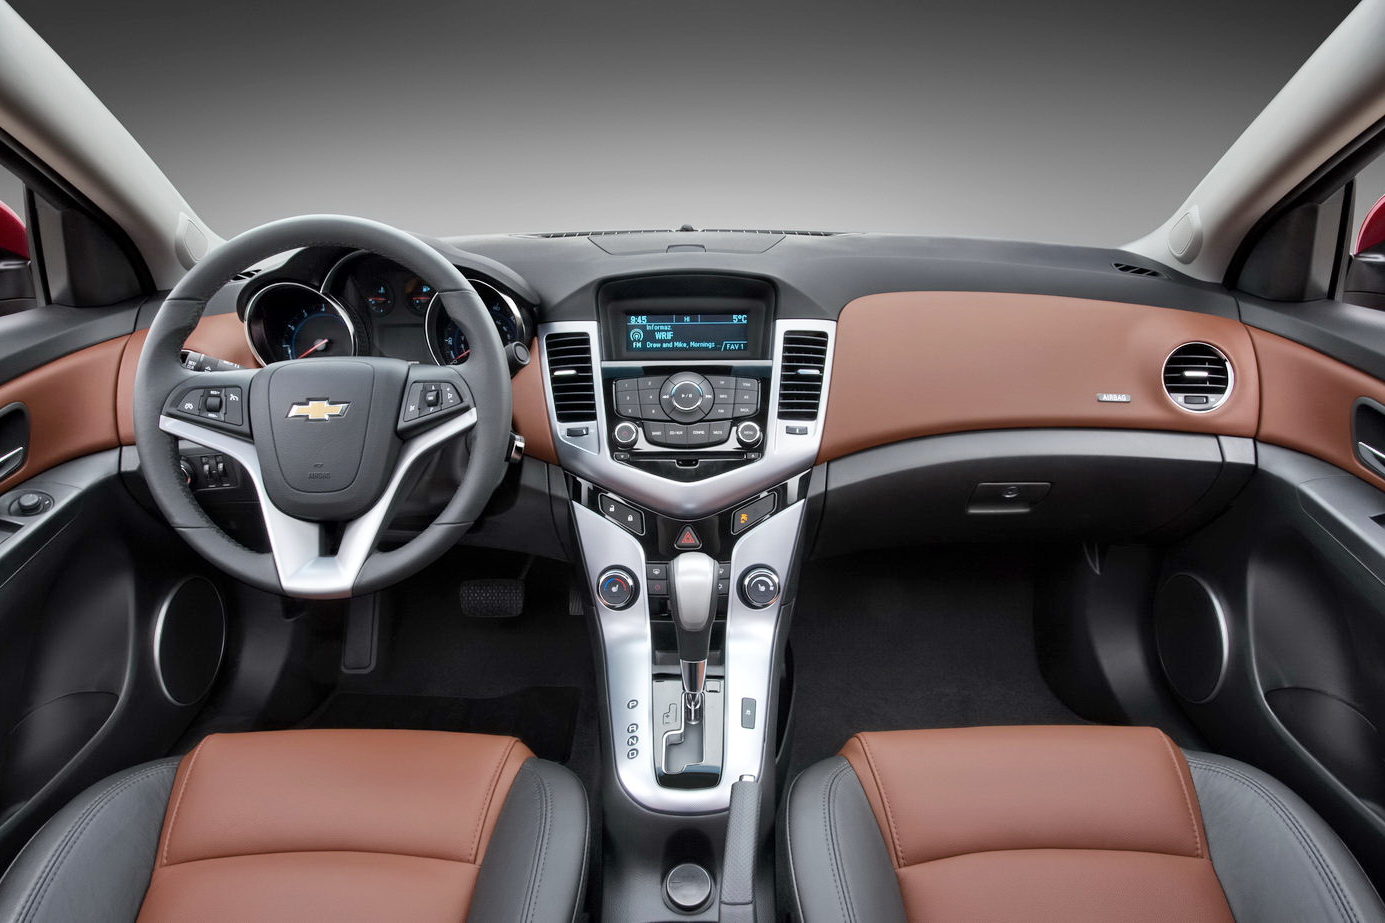 2012 chevy cruze ltz turbo gm recall chevrolet cruze. Black Bedroom Furniture Sets. Home Design Ideas